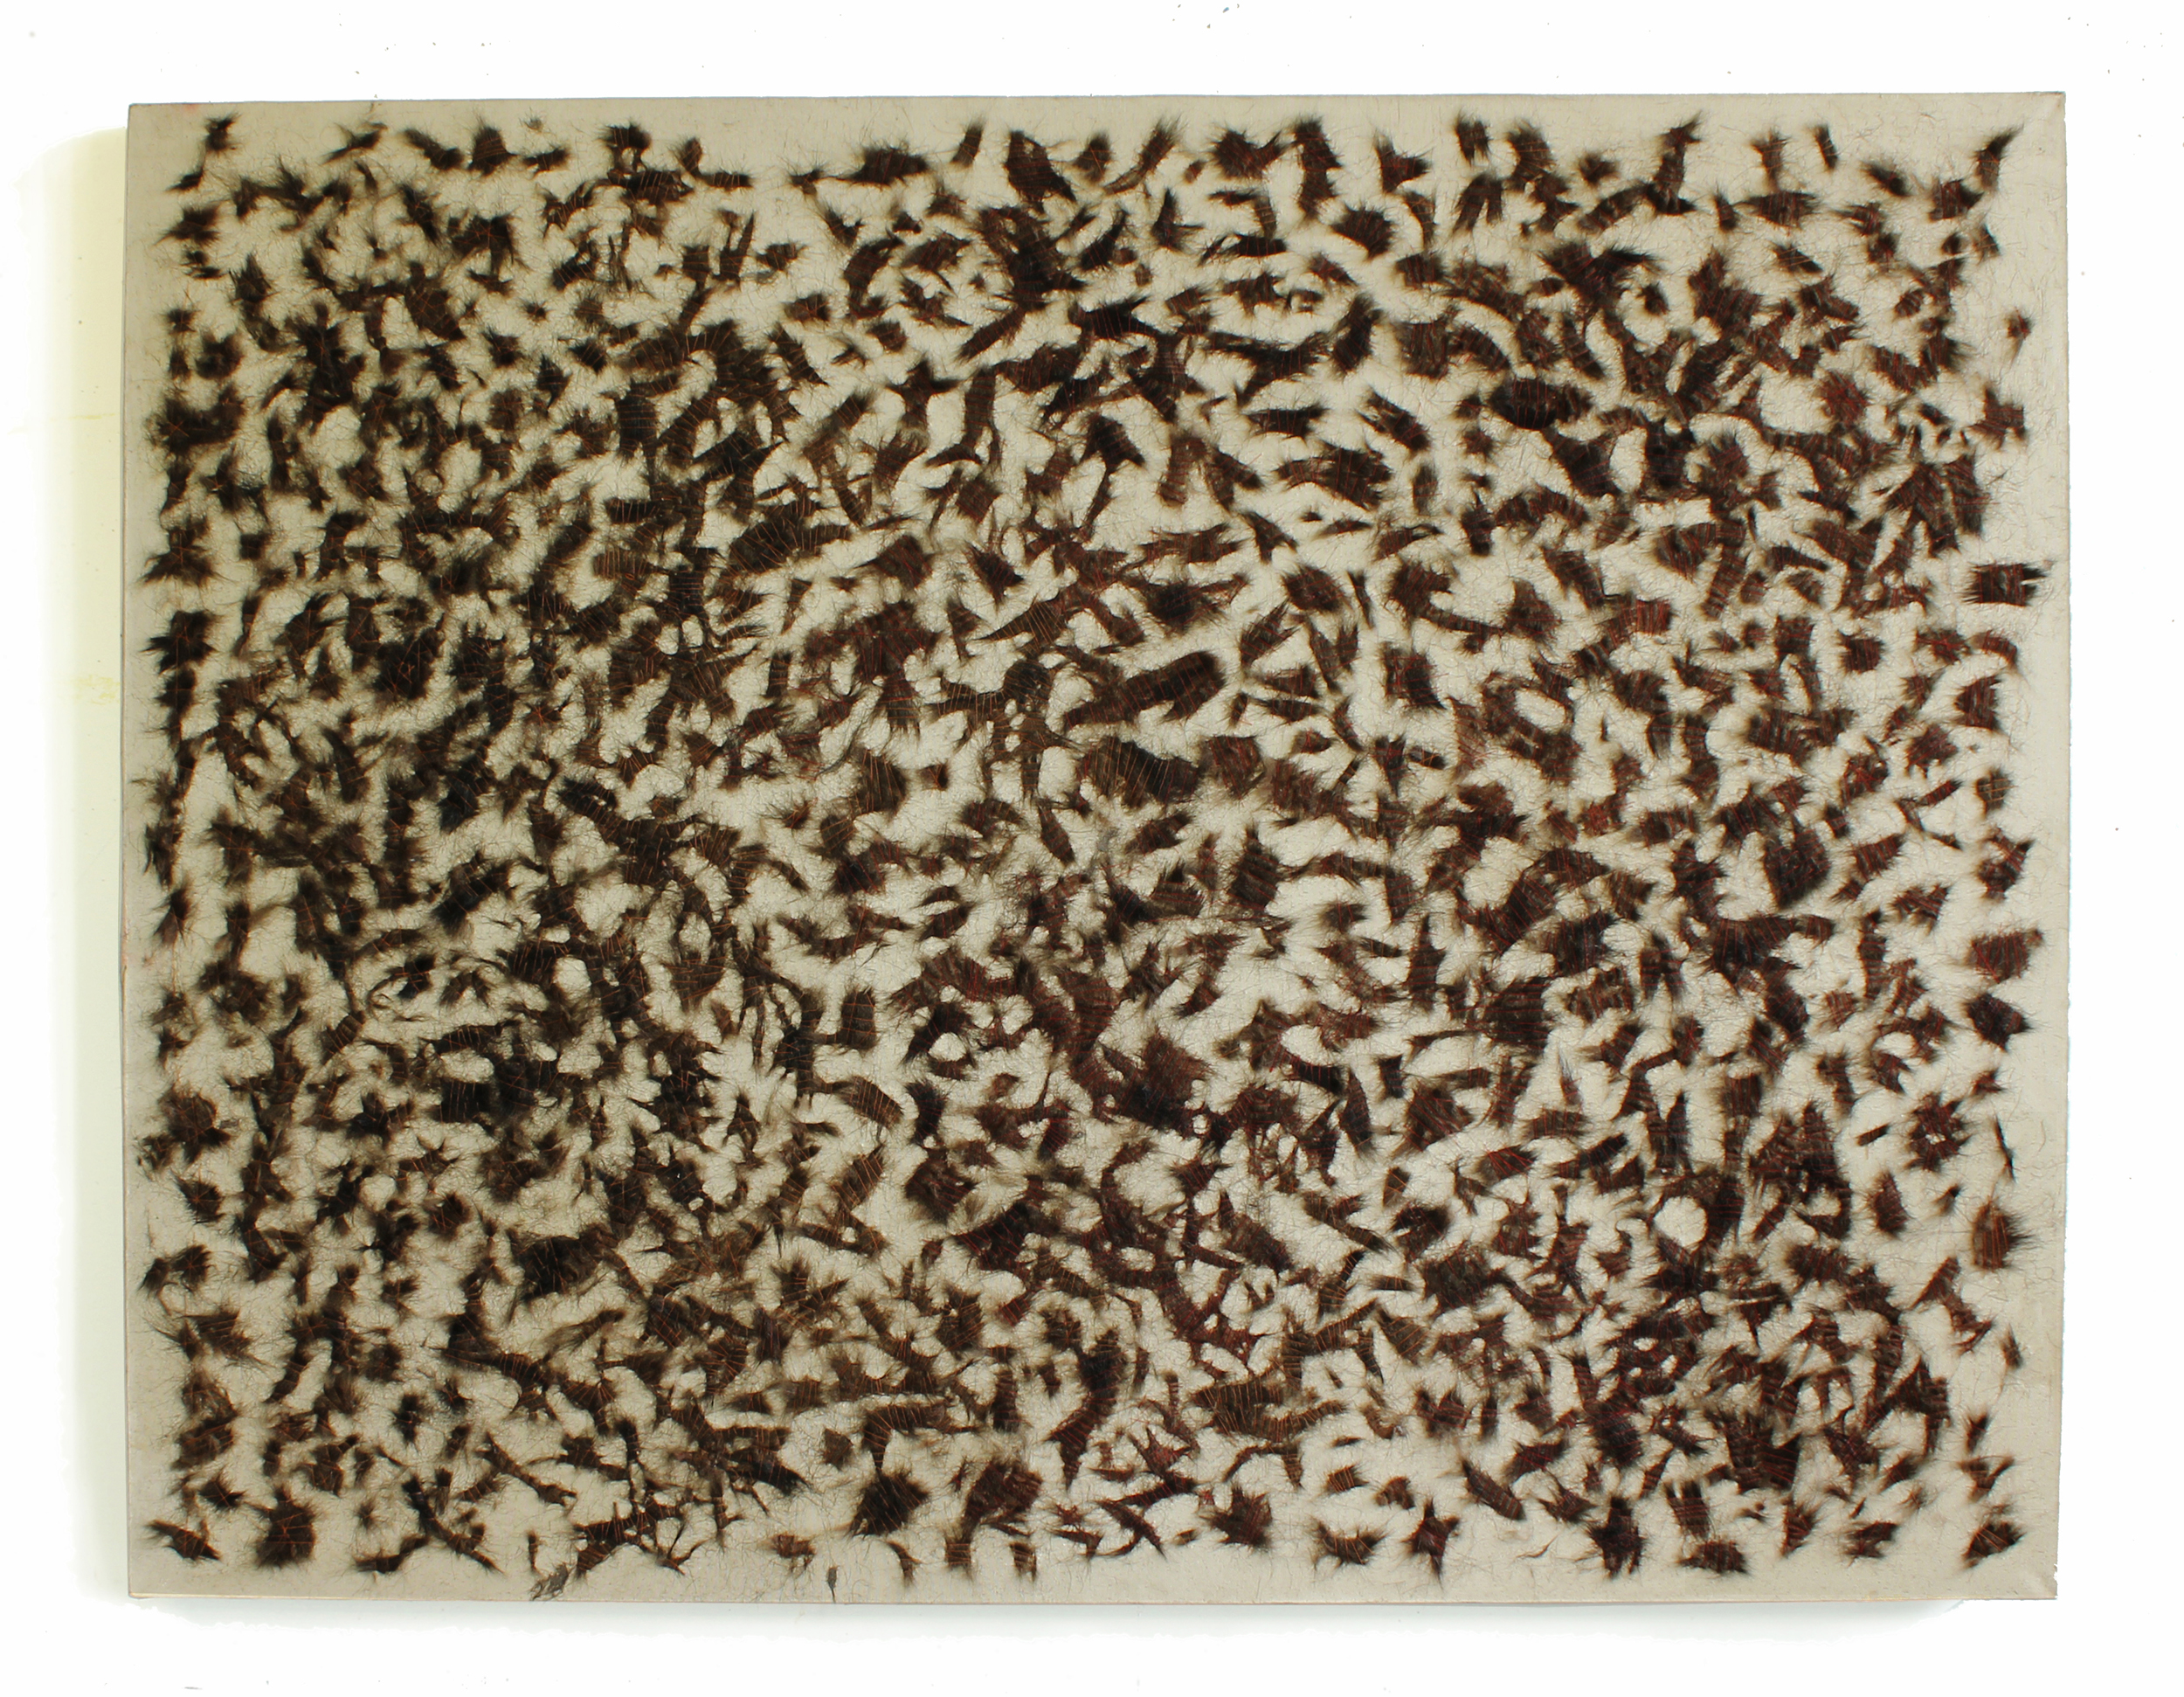 The Trinity part ll, 2013, hair and fur on canvas, 53 x 42 inches